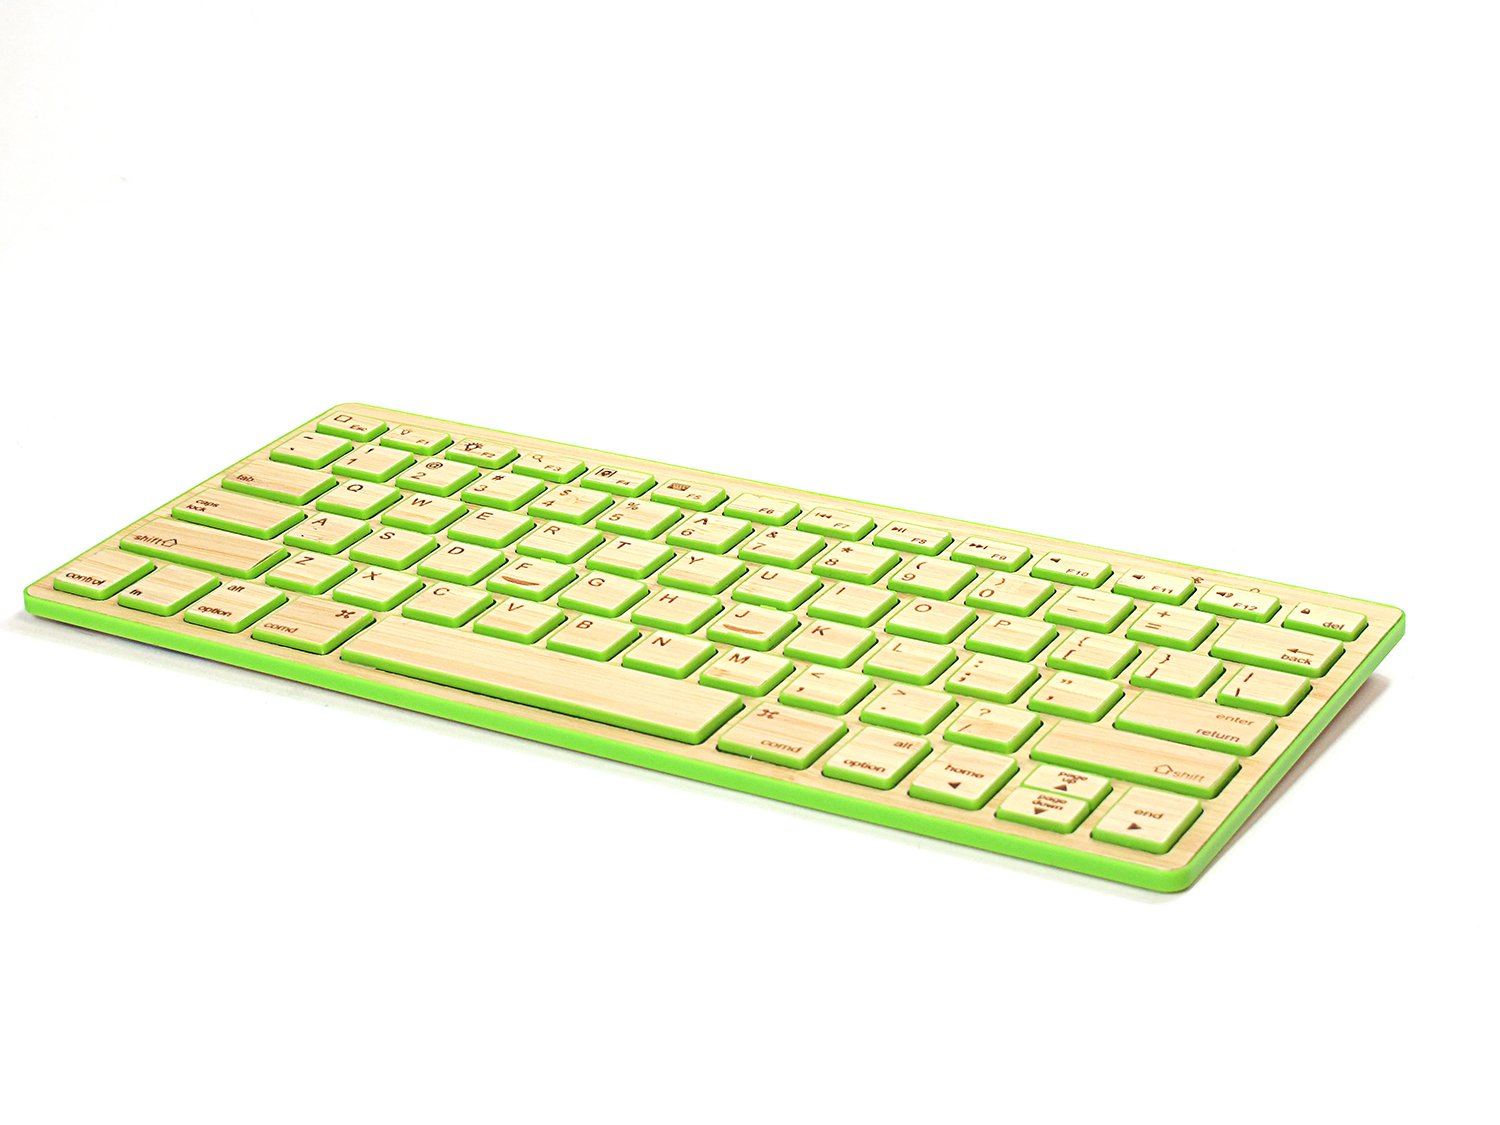 Impecca Designer Bamboo Wood Slim Portable Bluetooth Wireless Keyboard for Tablets, ipad, Smartphone and PC Computer with Built in Rechargeable Battery(Green)